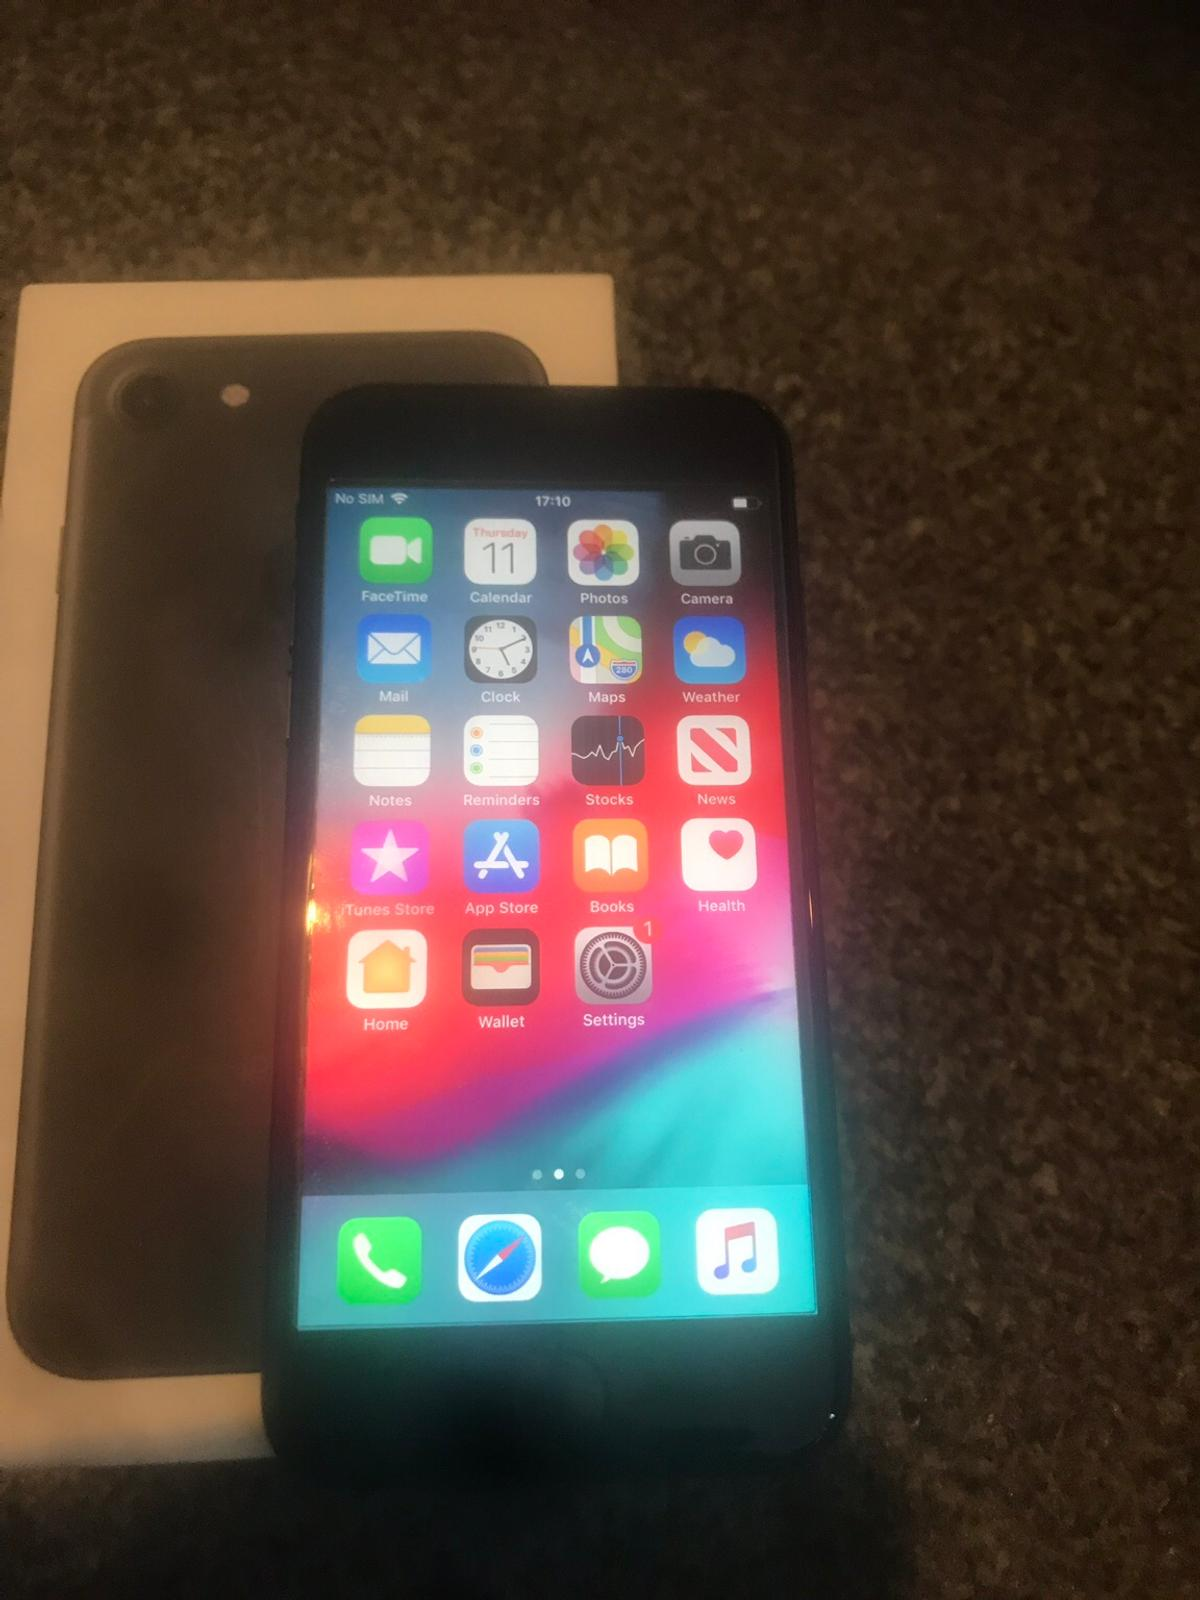 iPhone 7 unlocked in S6 Sheffield for £170 00 for sale | Shpock